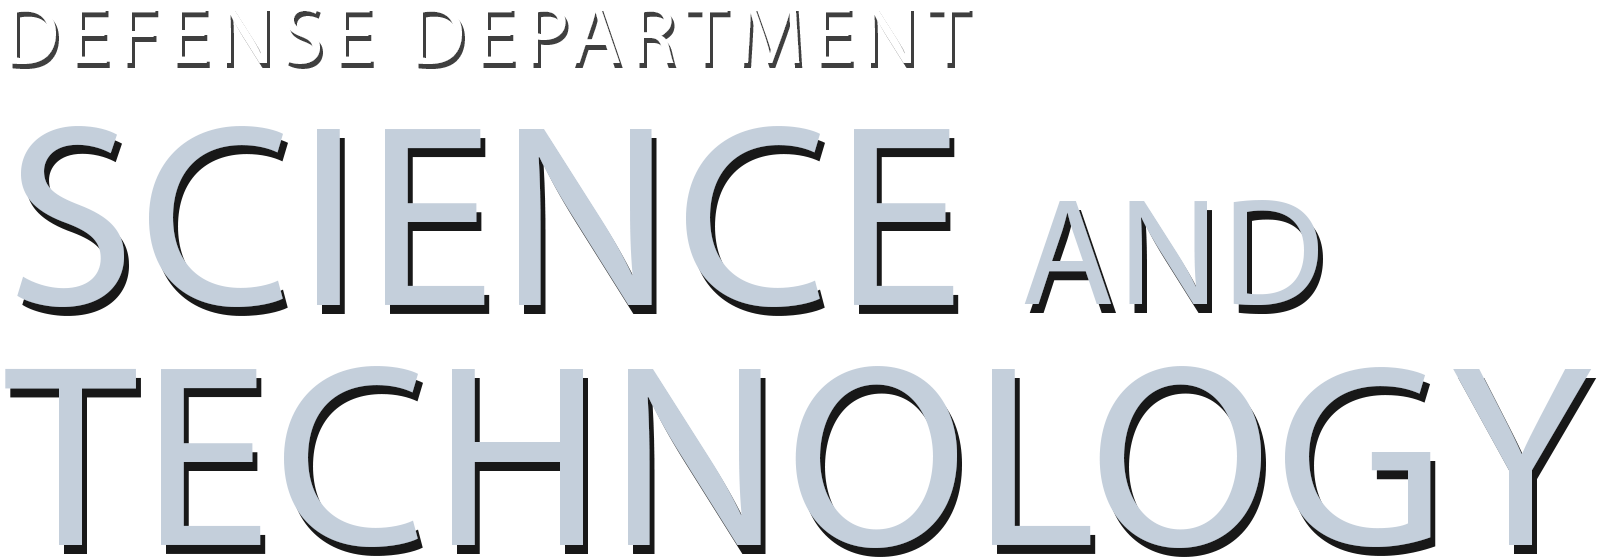 Department of Defense - Science & Technology